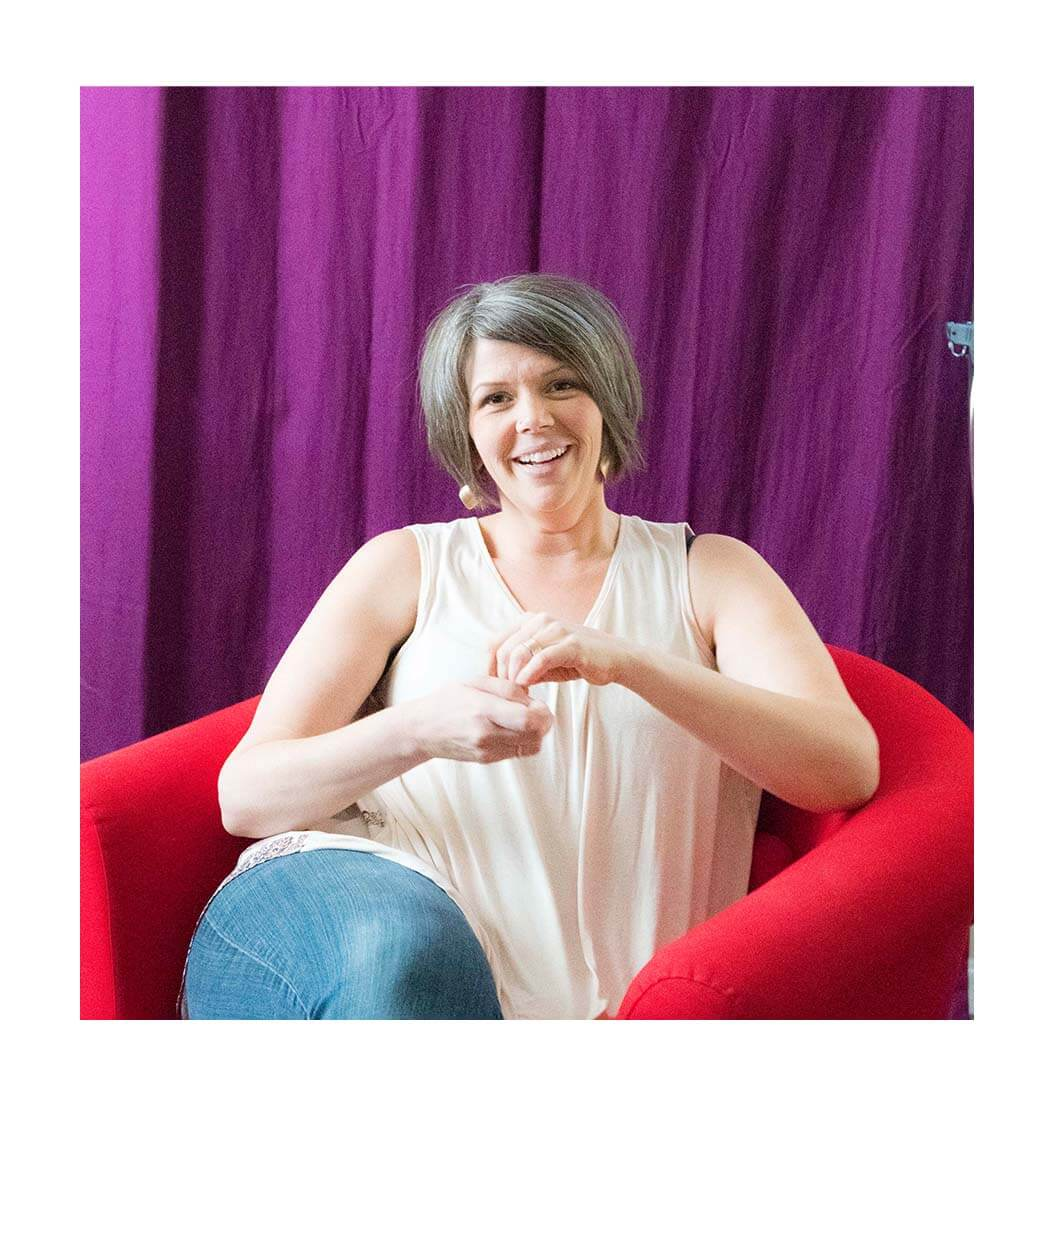 Michelle colorful red chair